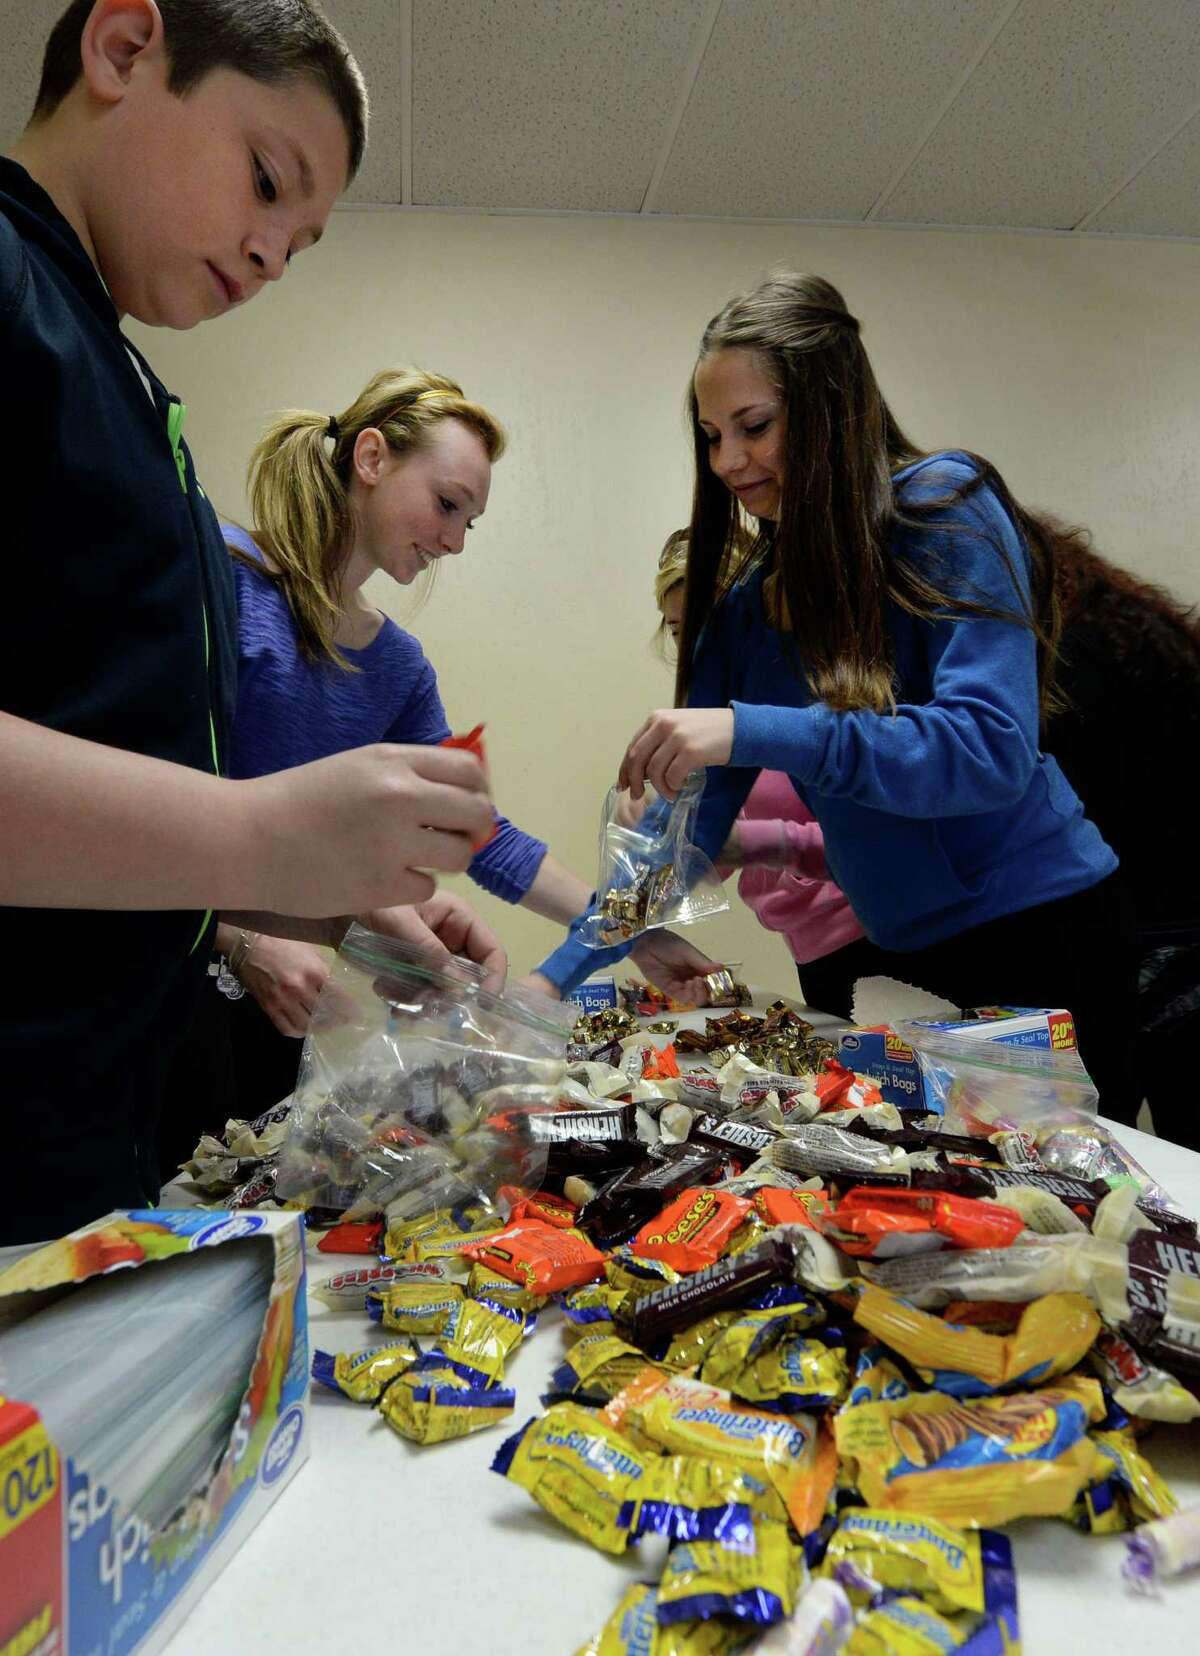 Joe Leichenauer, 12, of Stephentown, left, Christie Cullum,15, of East Greenbush, center, and Alexis Charland, 15, of East Greenbush assemble gift bags full of candy Thursday morning, April 17, 2014, in preparation for the Easter Sunday celebration to take place at the Albany City Mission in Albany, N.Y. (Skip Dickstein / Times Union)